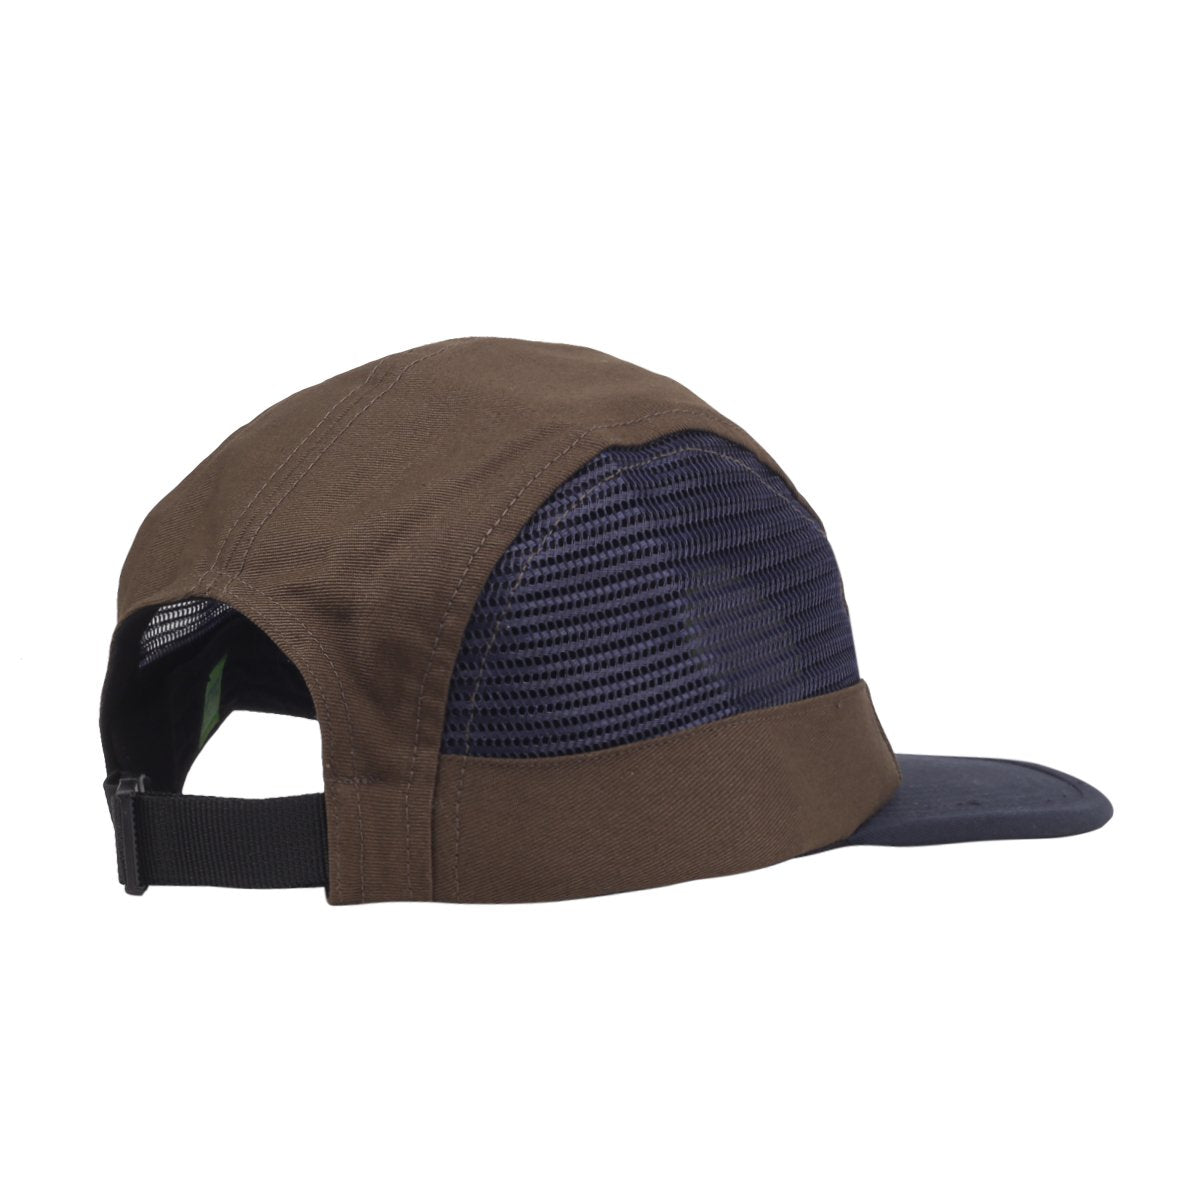 5 Panel Cap Mili Green, Dark Navy